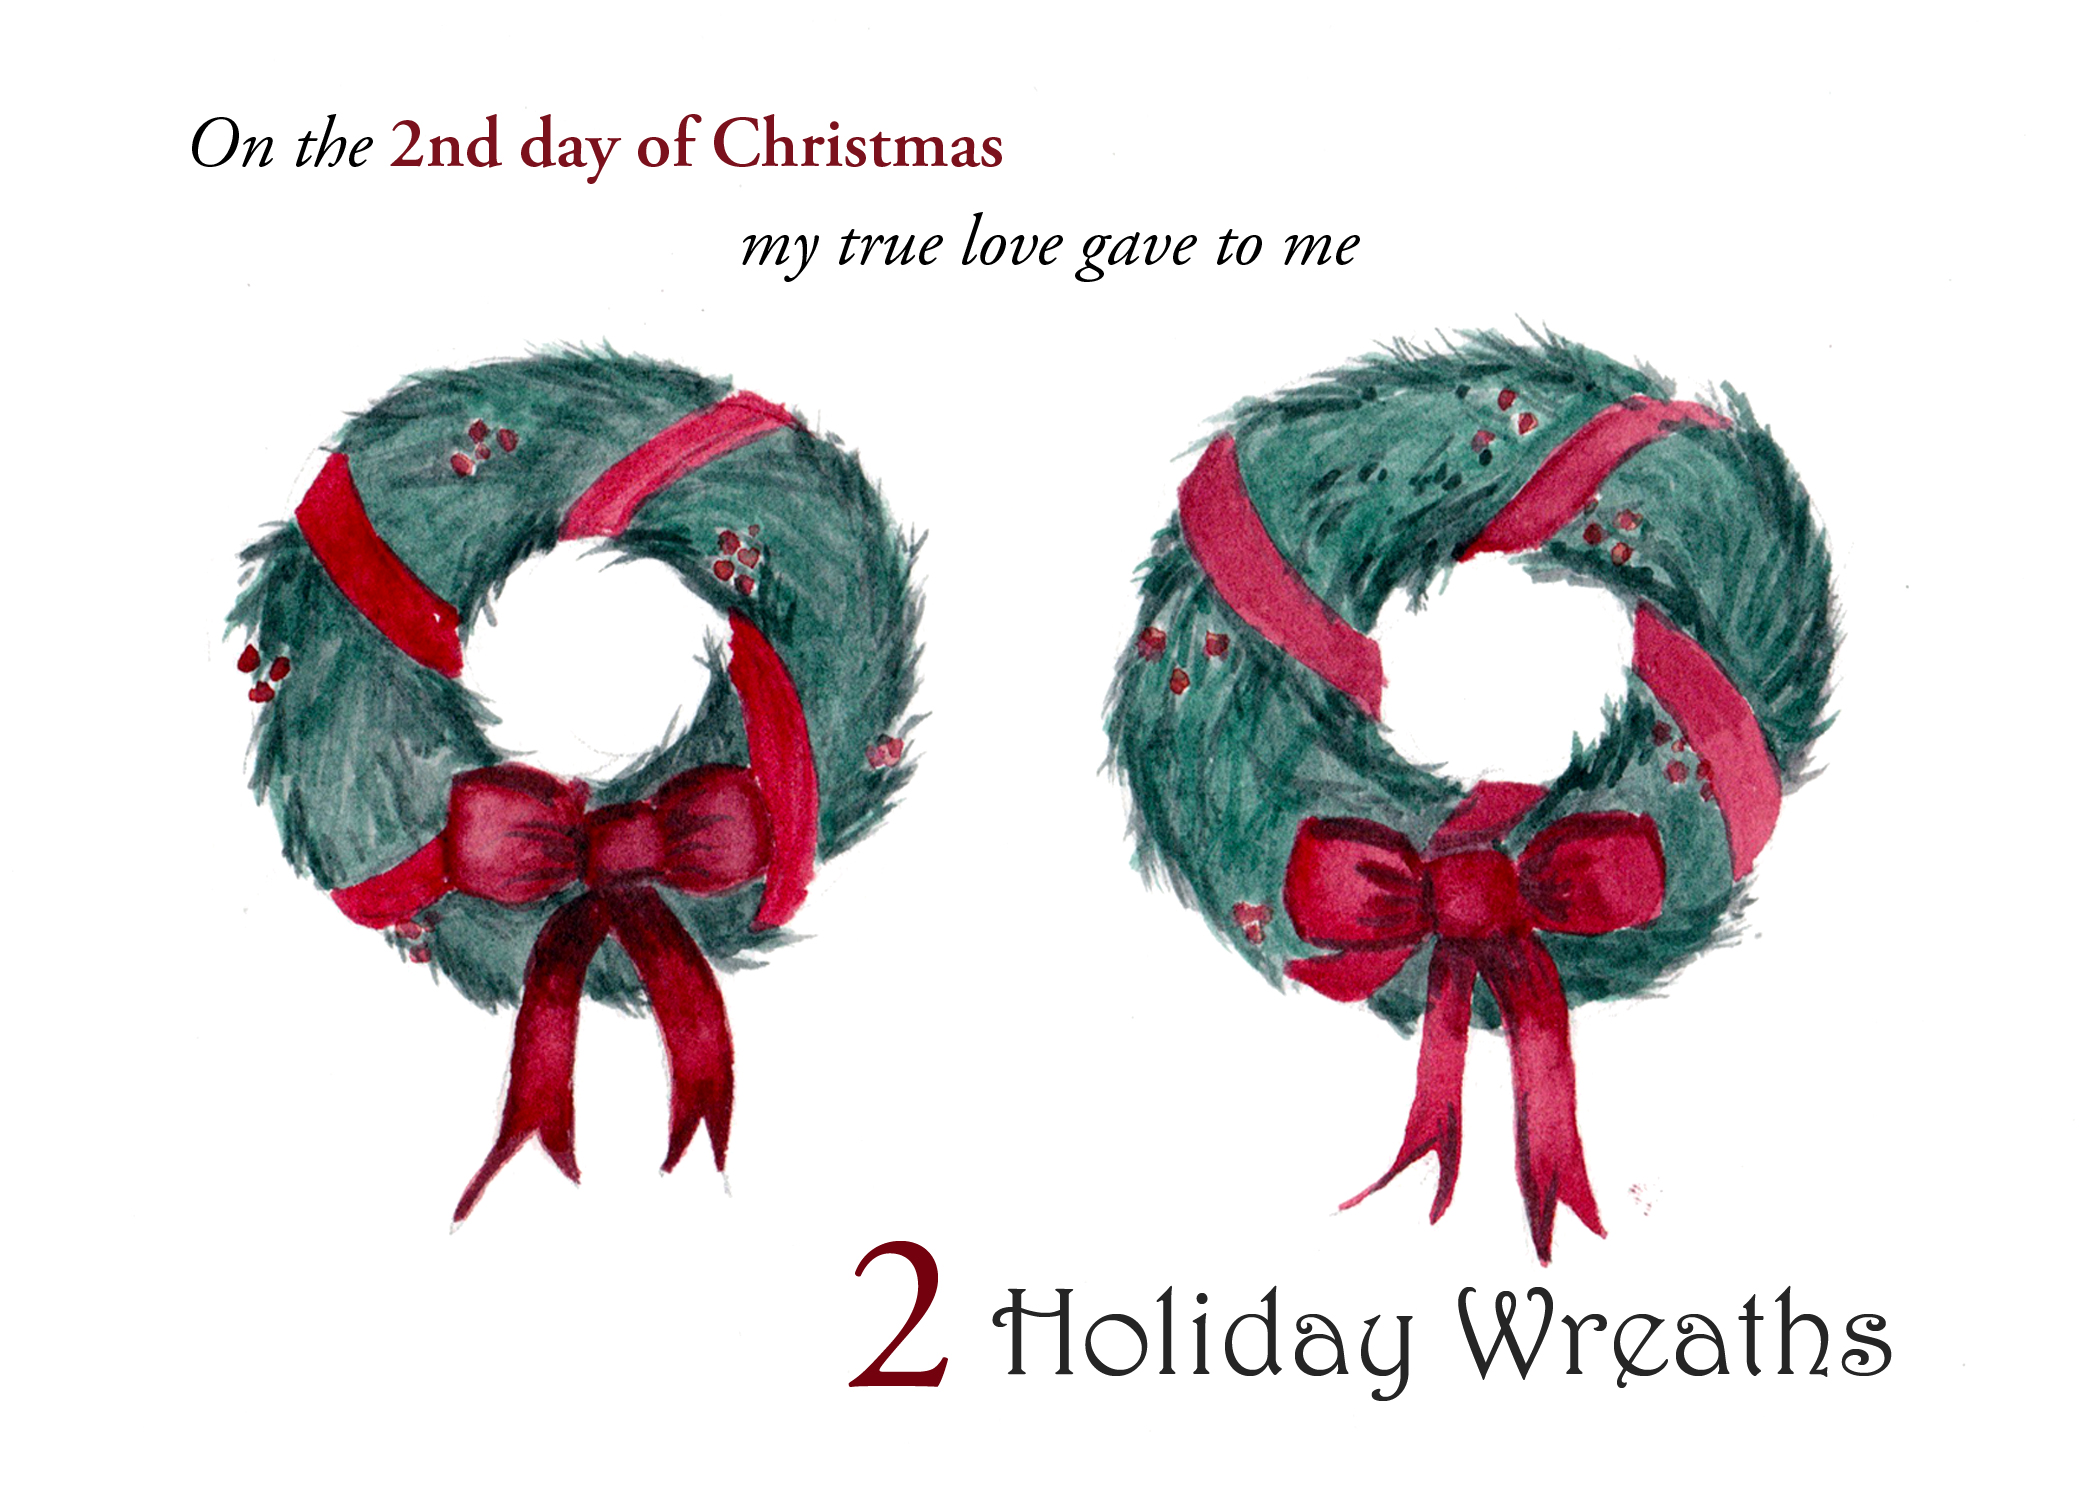 The 2nd folded card in a set of the 12 Days of Christmas small note cards is 2 Hanging Wreaths